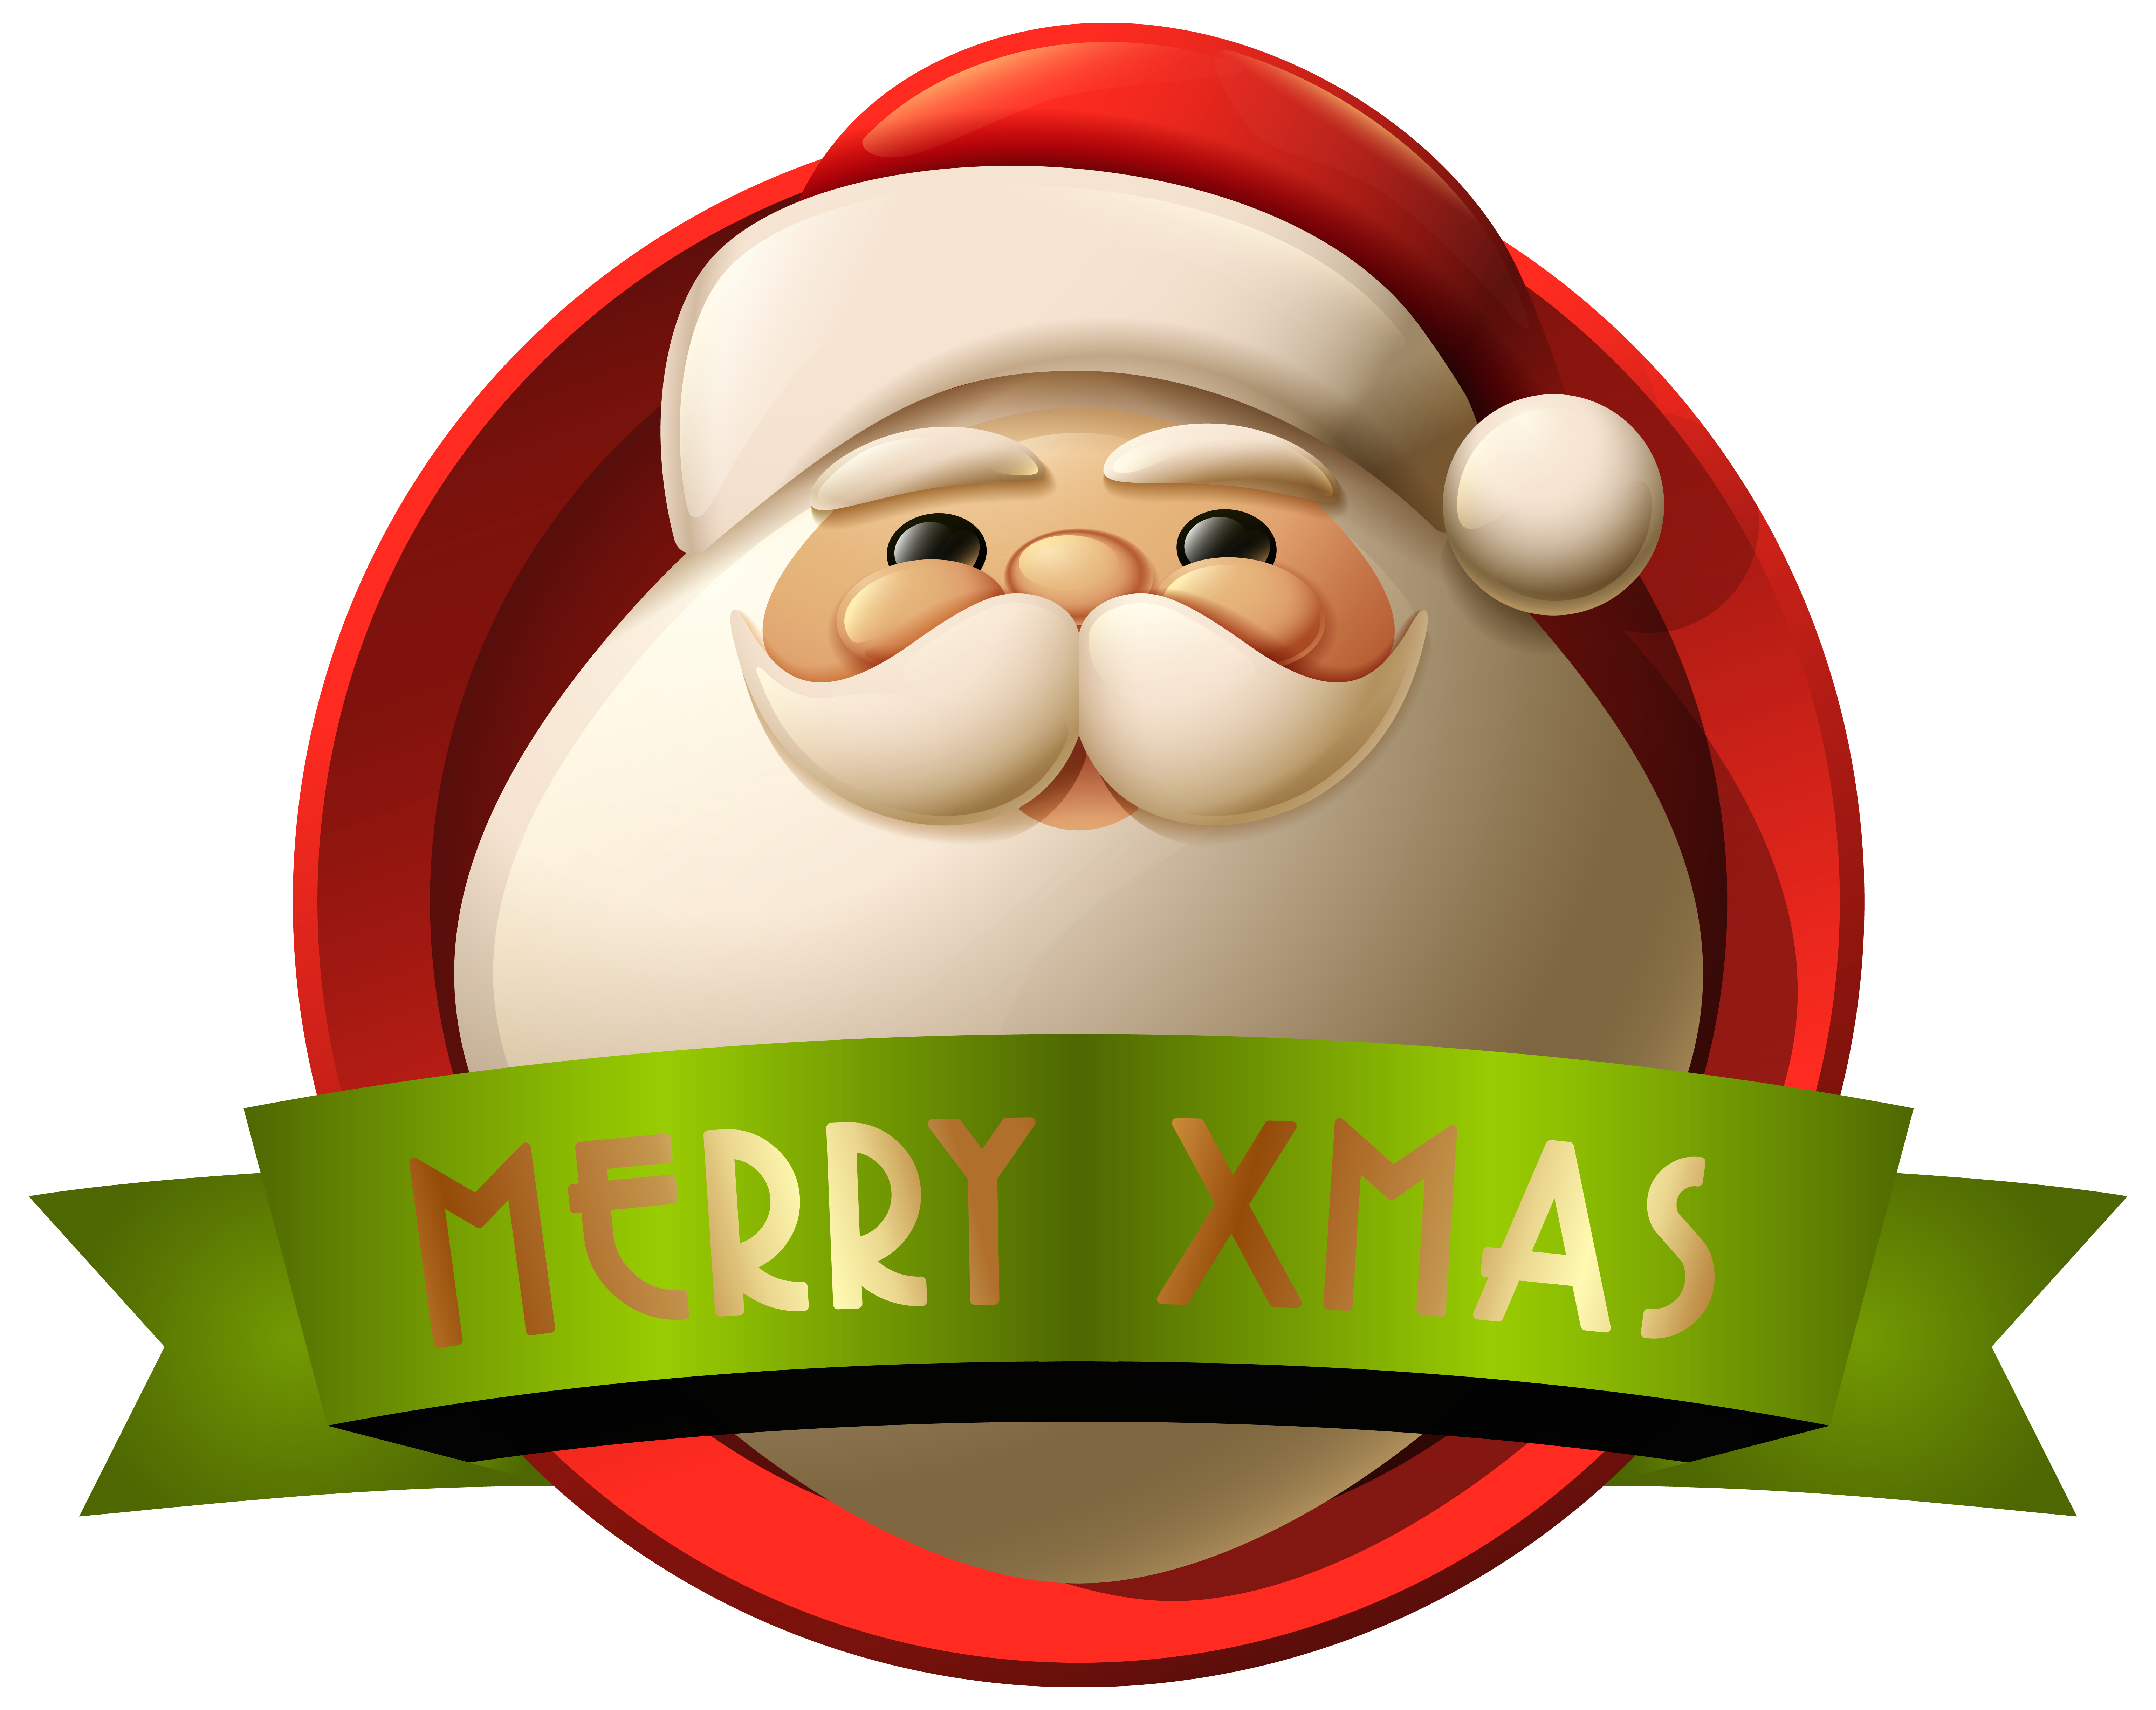 Merry Christmas Clip Art.Santa Merry Christmas Clipart 20 Free Cliparts Download